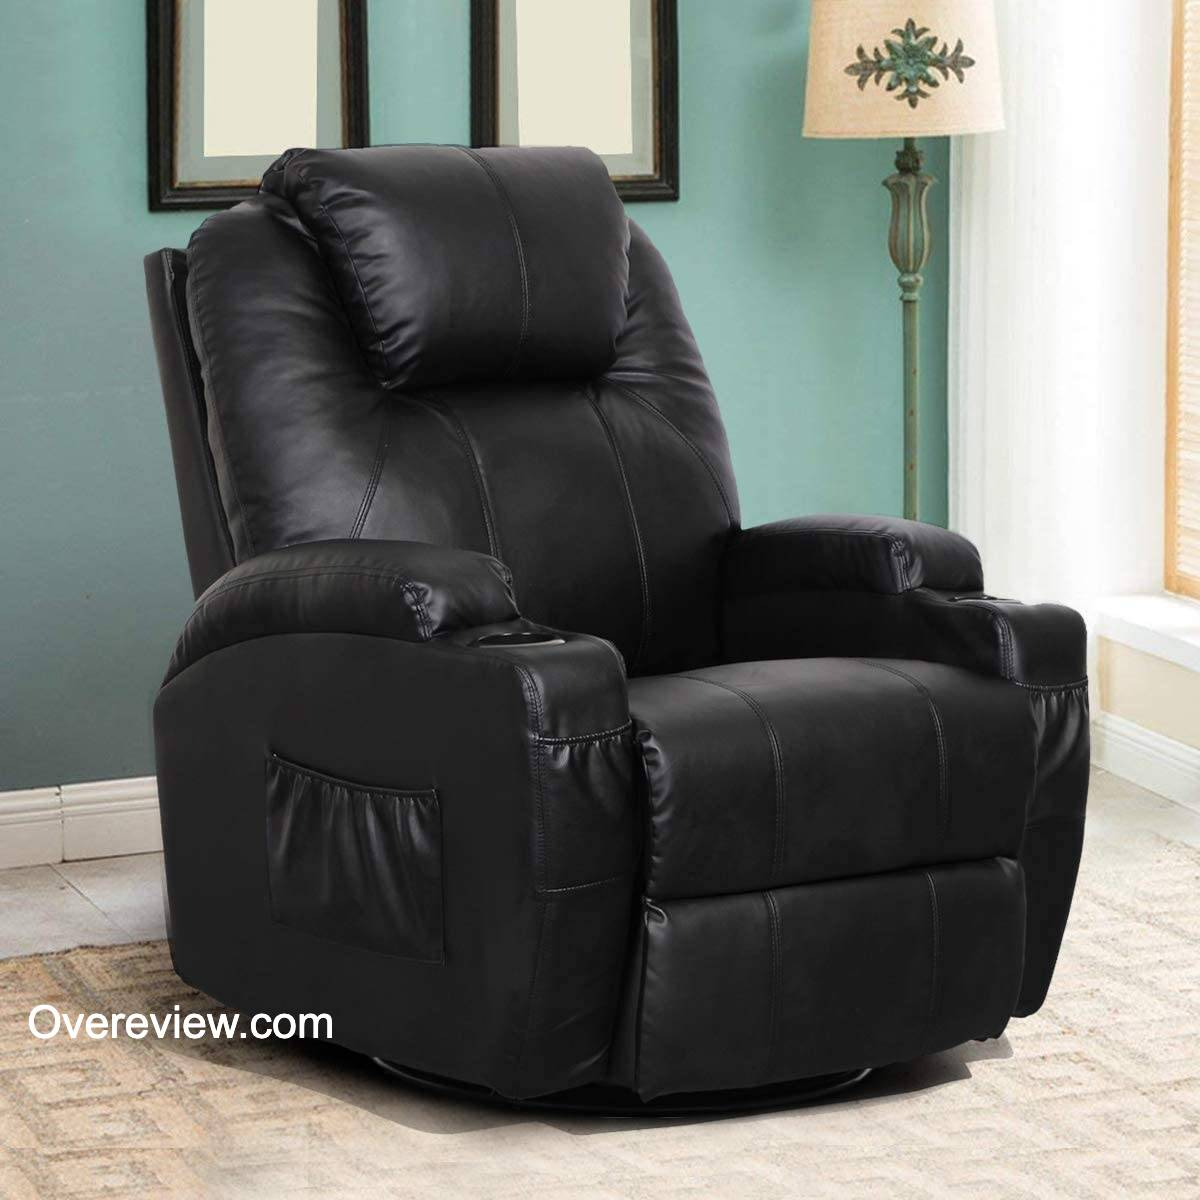 Best 15 Most Comfortable Recliners {Buying Guide} Reviews - [year] 14